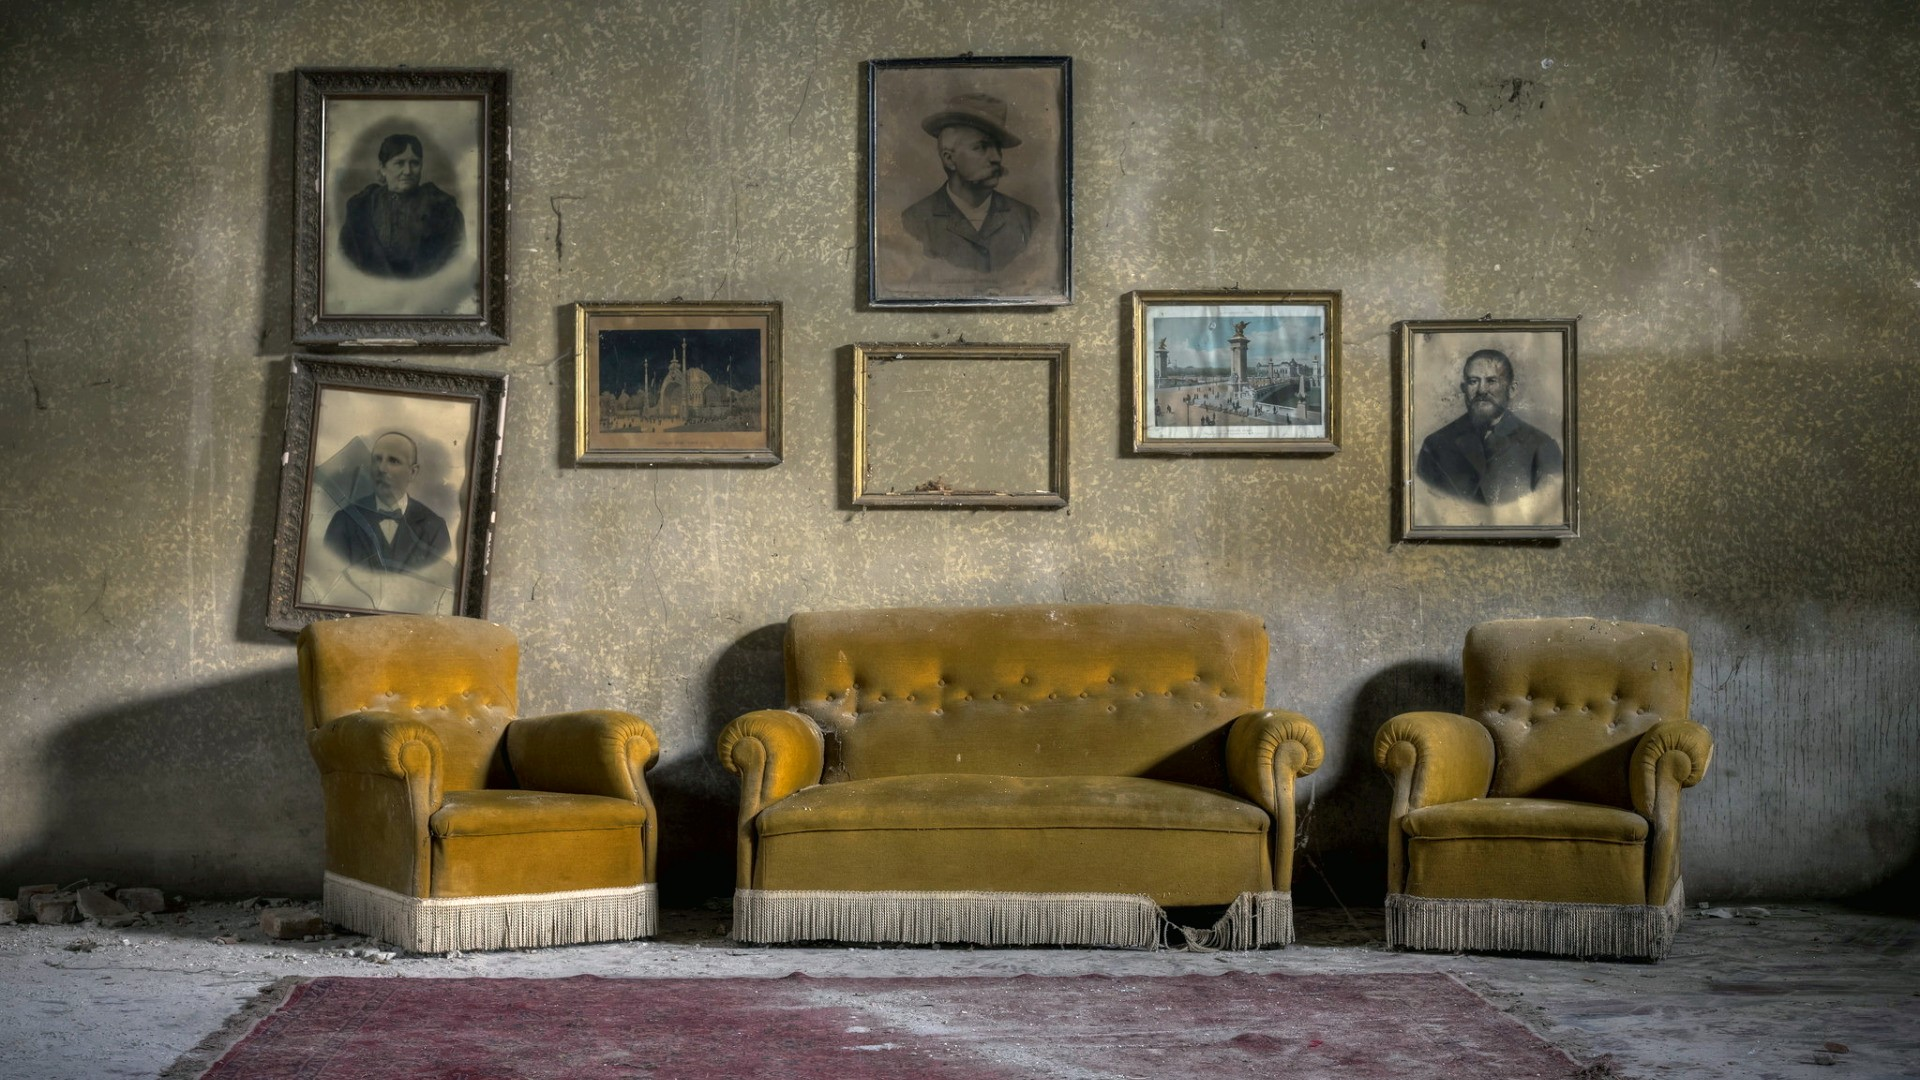 picture: sofa, armchairs, room, coche (image)